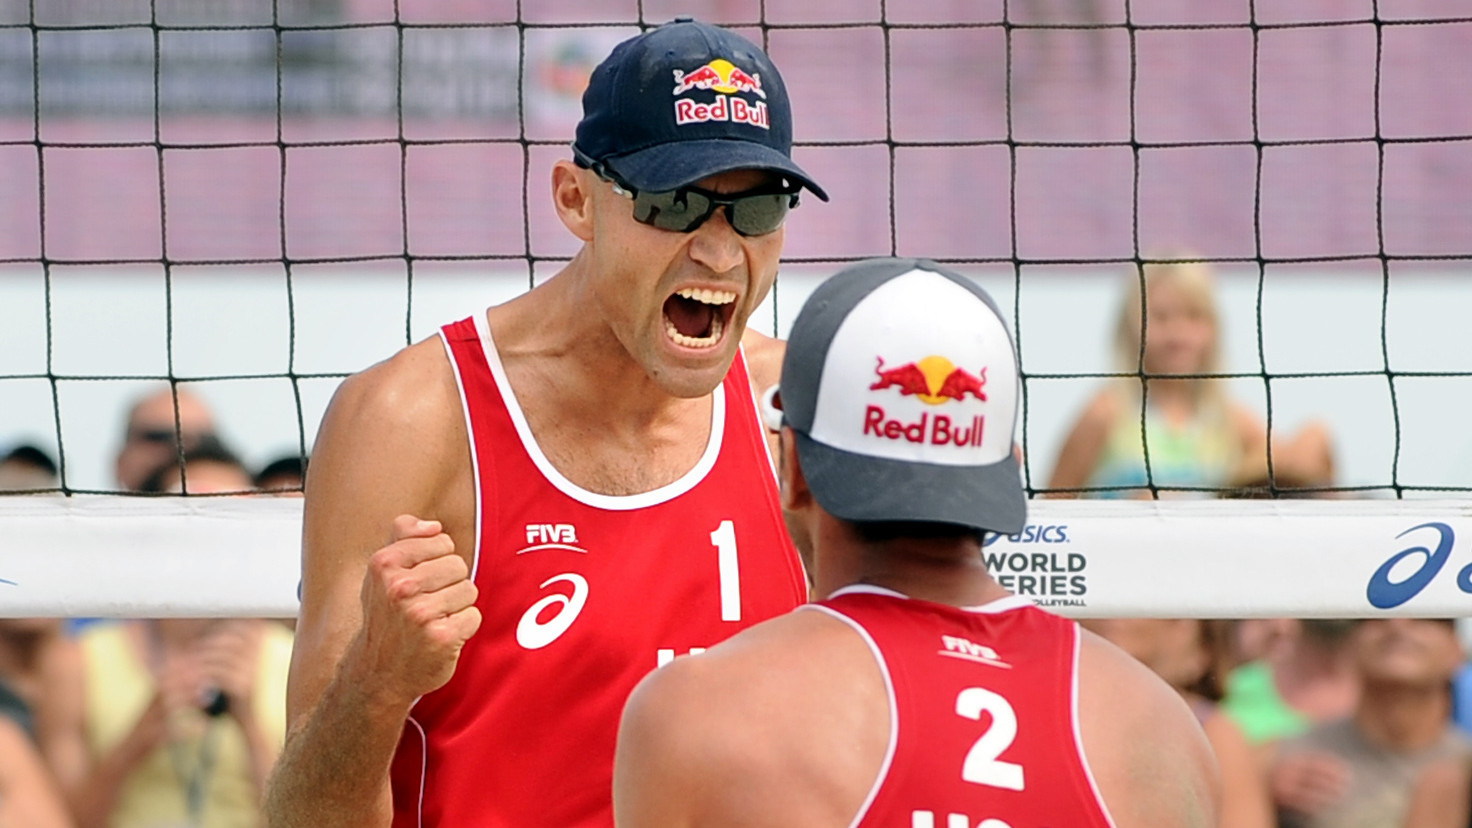 Beach volleyball titles in Long Beach are an all-American affair